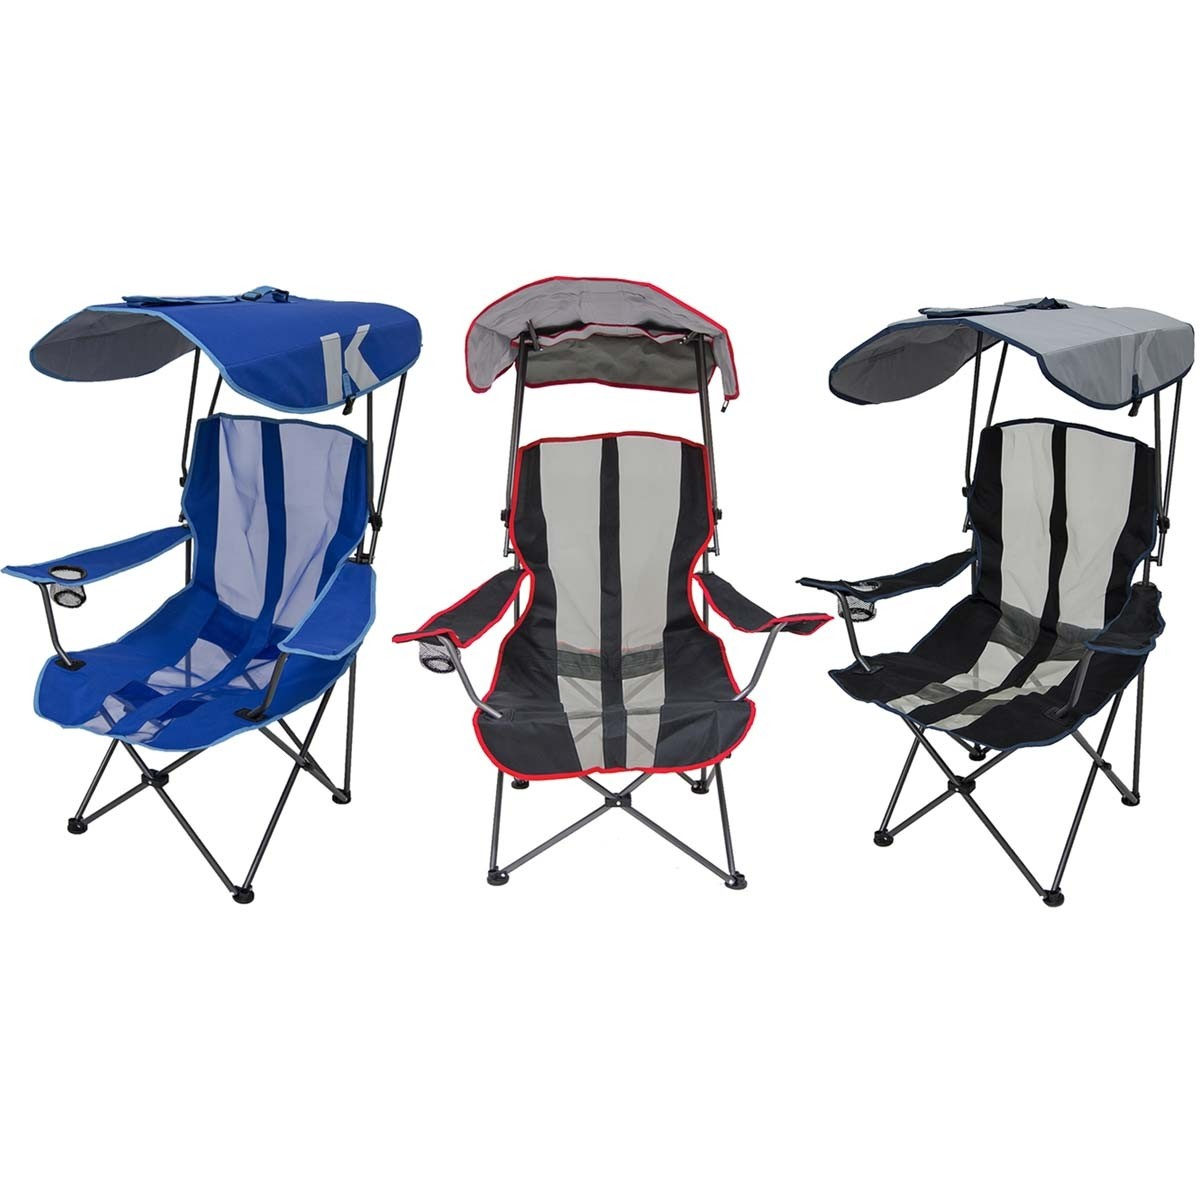 Kelsyus Folding Chair with Shade Canopy  sc 1 st  Anthem Sports & Kelsyus Folding Chair with Shade Canopy - Sports Parent Survival ...